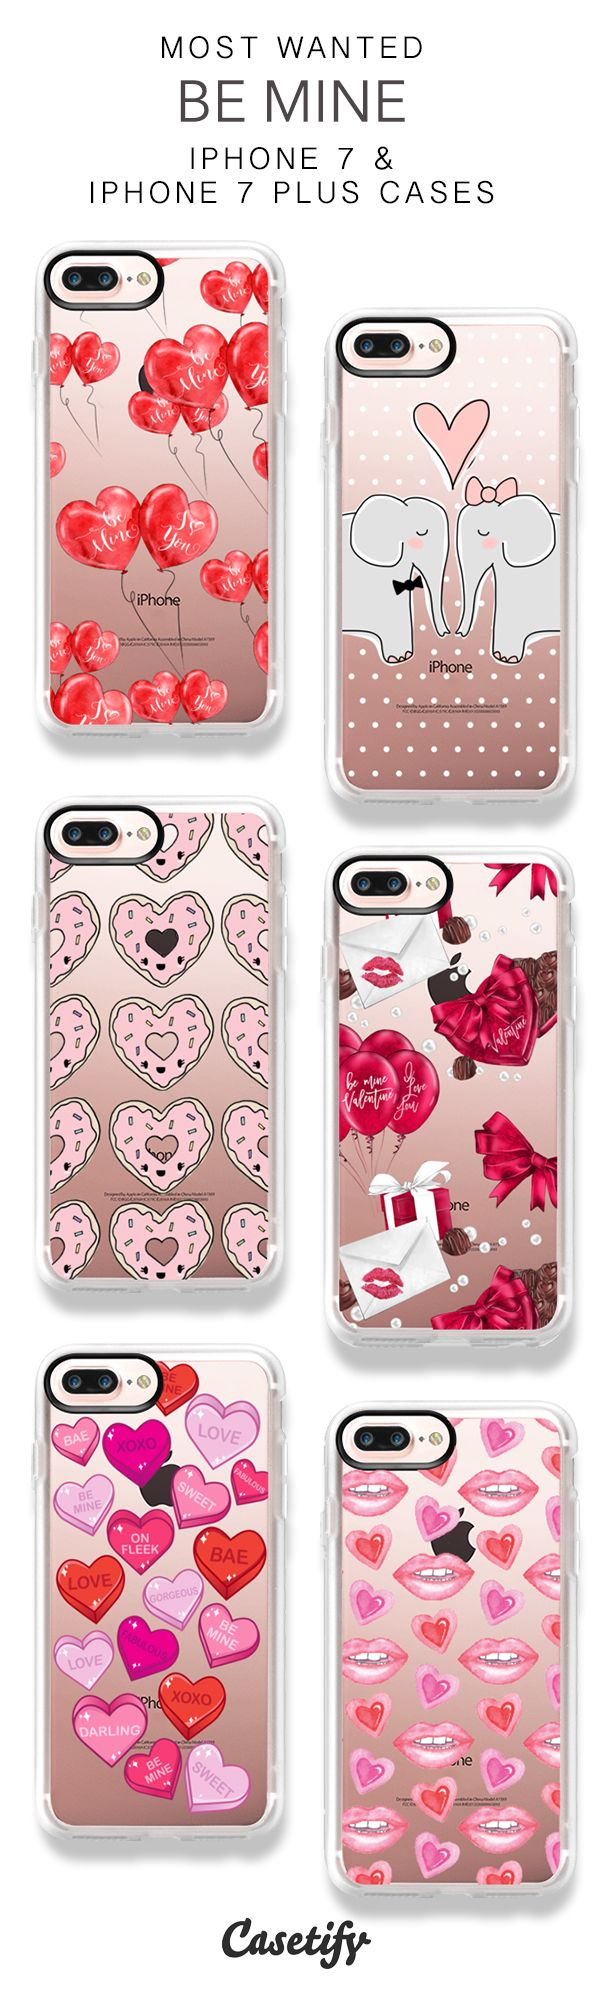 Most Wanted Be Mine iPhone 7 Cases & iPhone 7 Plus Cases here > https://www.casetify.com/collections/valentines#/